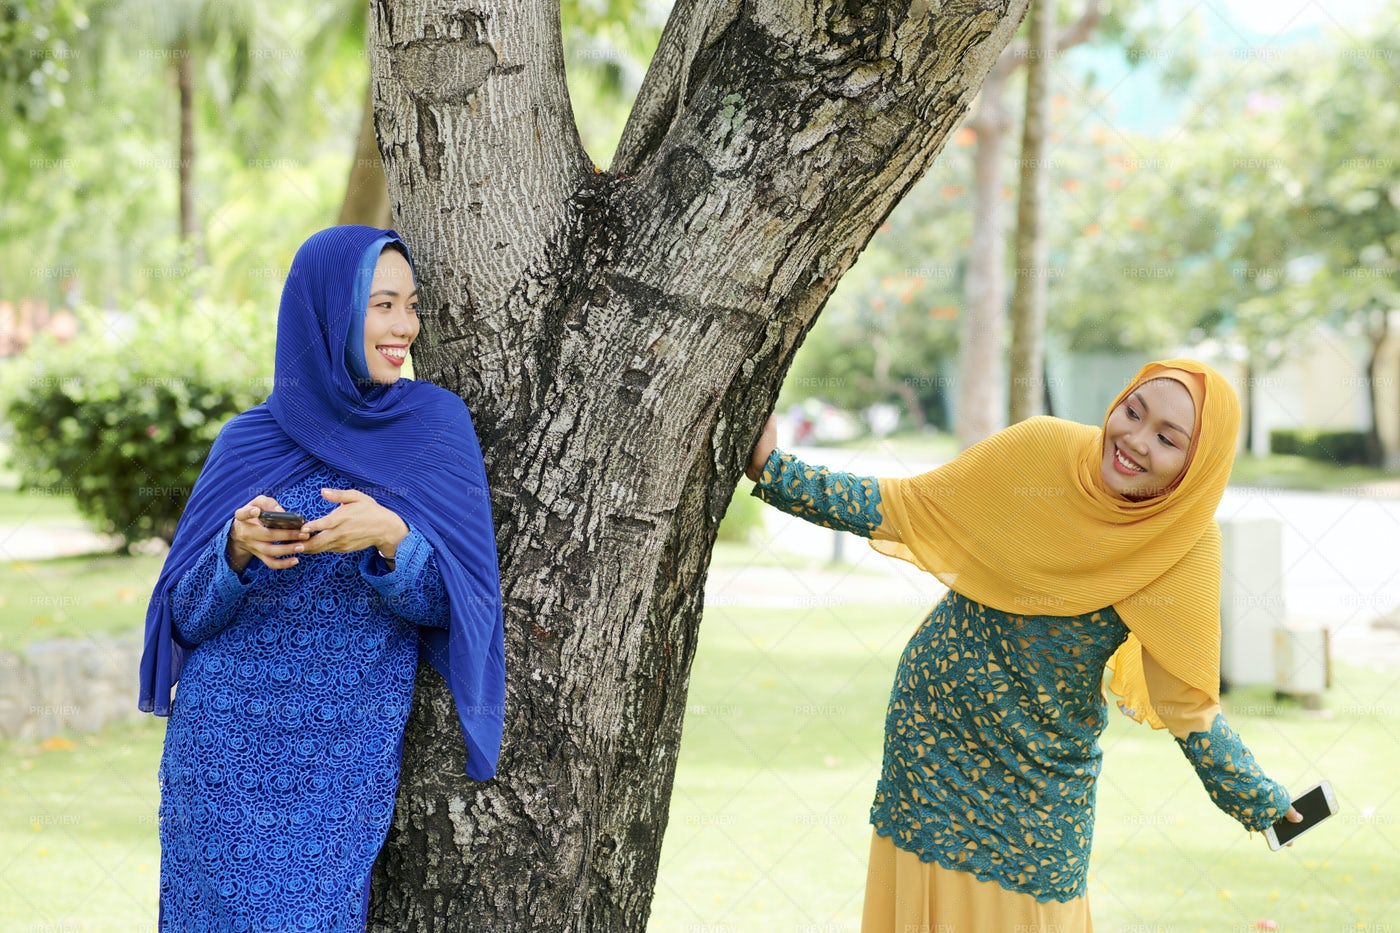 Cheerful Islamic Women Playing In Park: Stock Photos